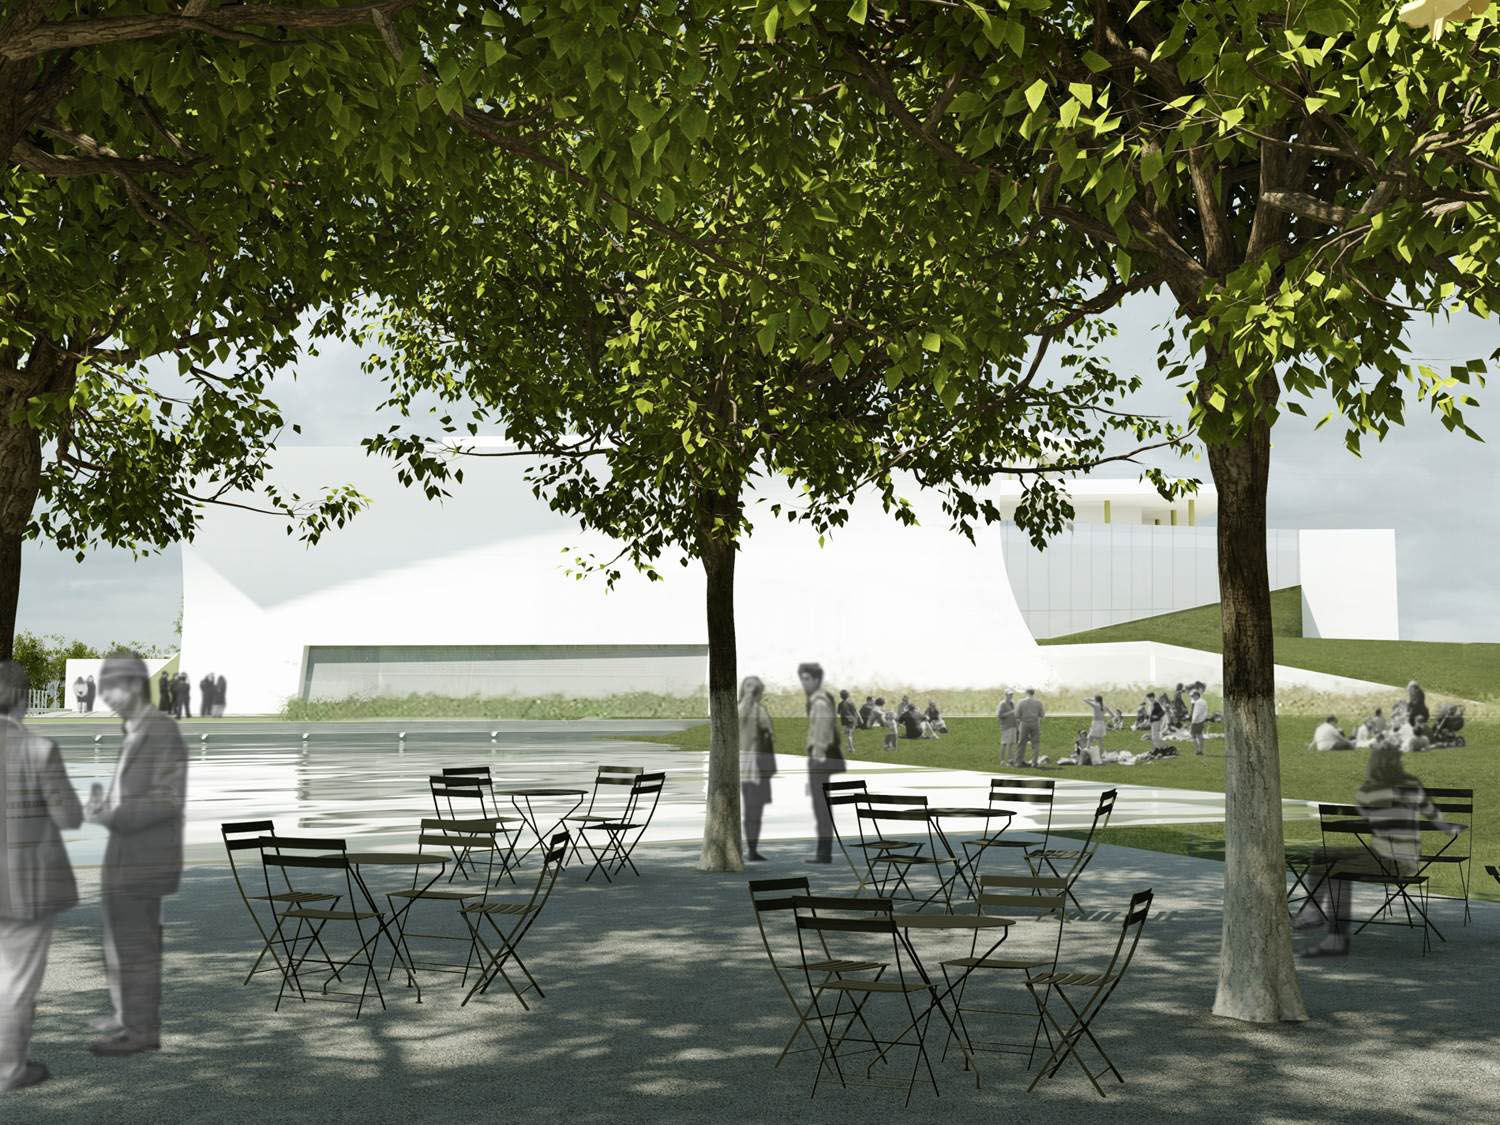 The Kennedy Center said the landscape is designed to welcomes the community to enjoy sculpture and interactive art, meticulously planned gardens, casual seating areas, and reflecting ponds. (Courtesy Steven Holl Architects via the Kennedy Center)